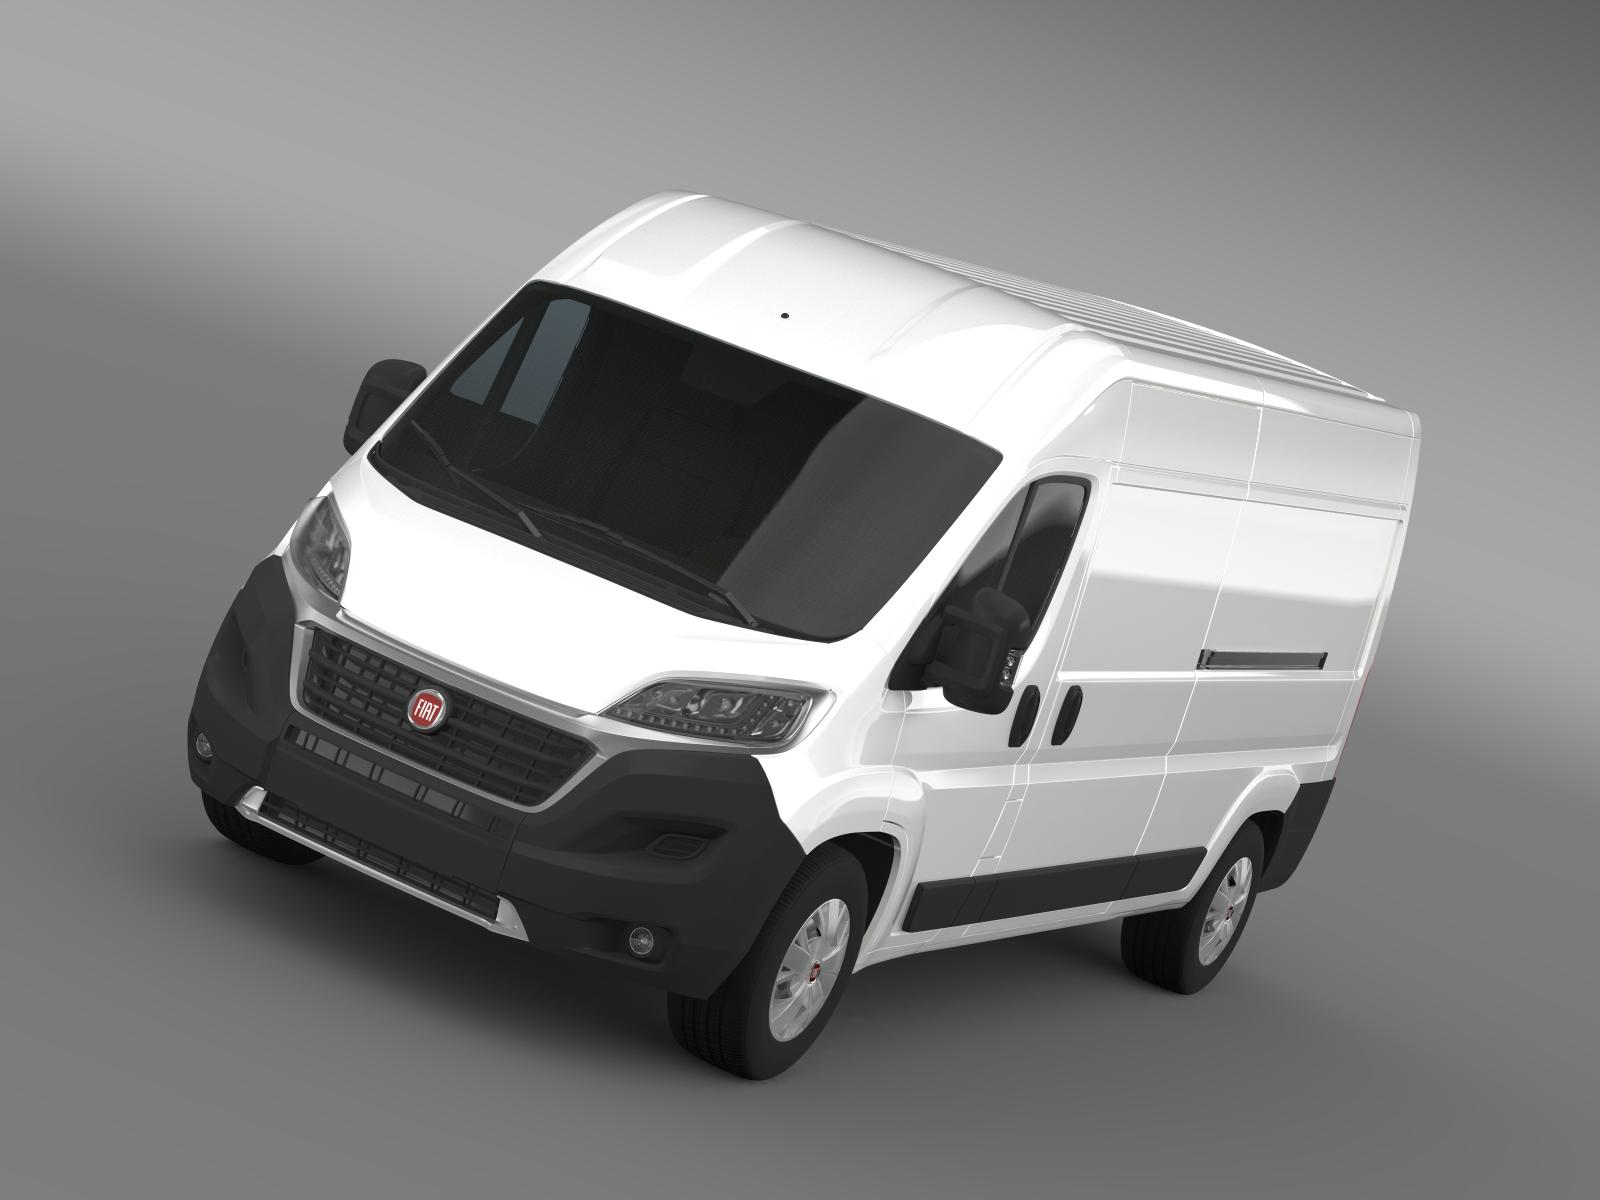 fiat ducato van l3h2 2015 3d model. Black Bedroom Furniture Sets. Home Design Ideas